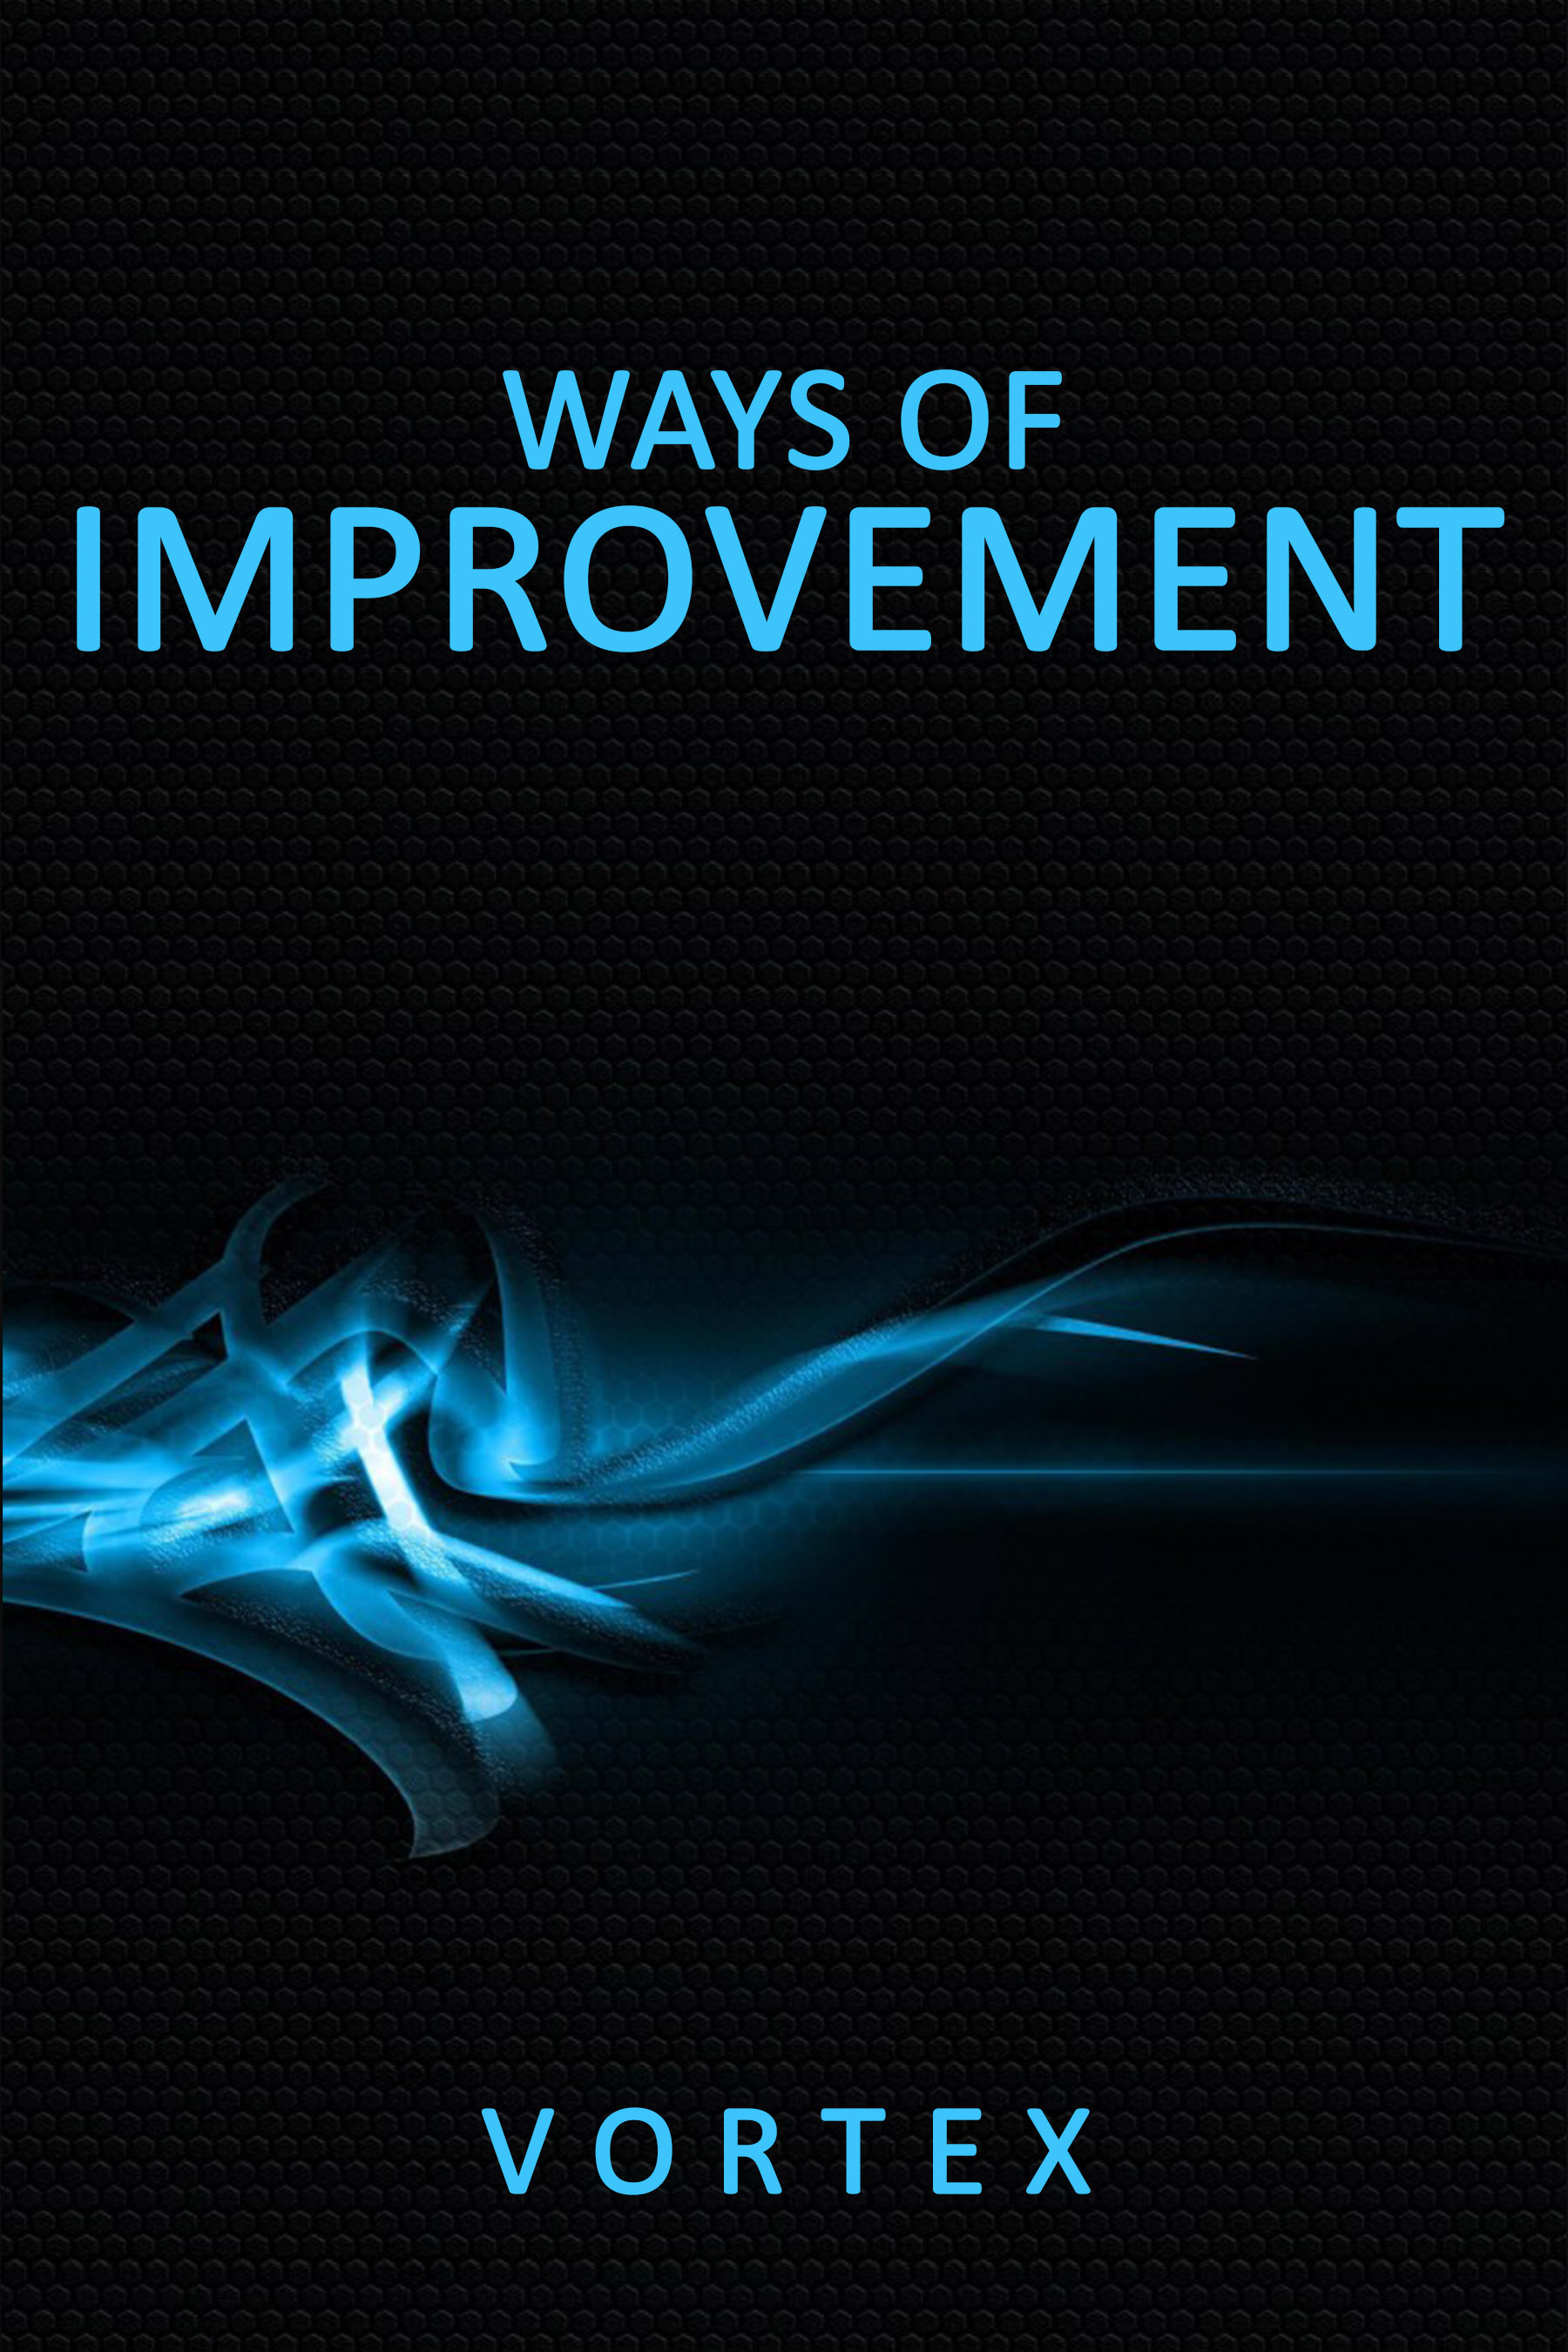 Ways of Improvement